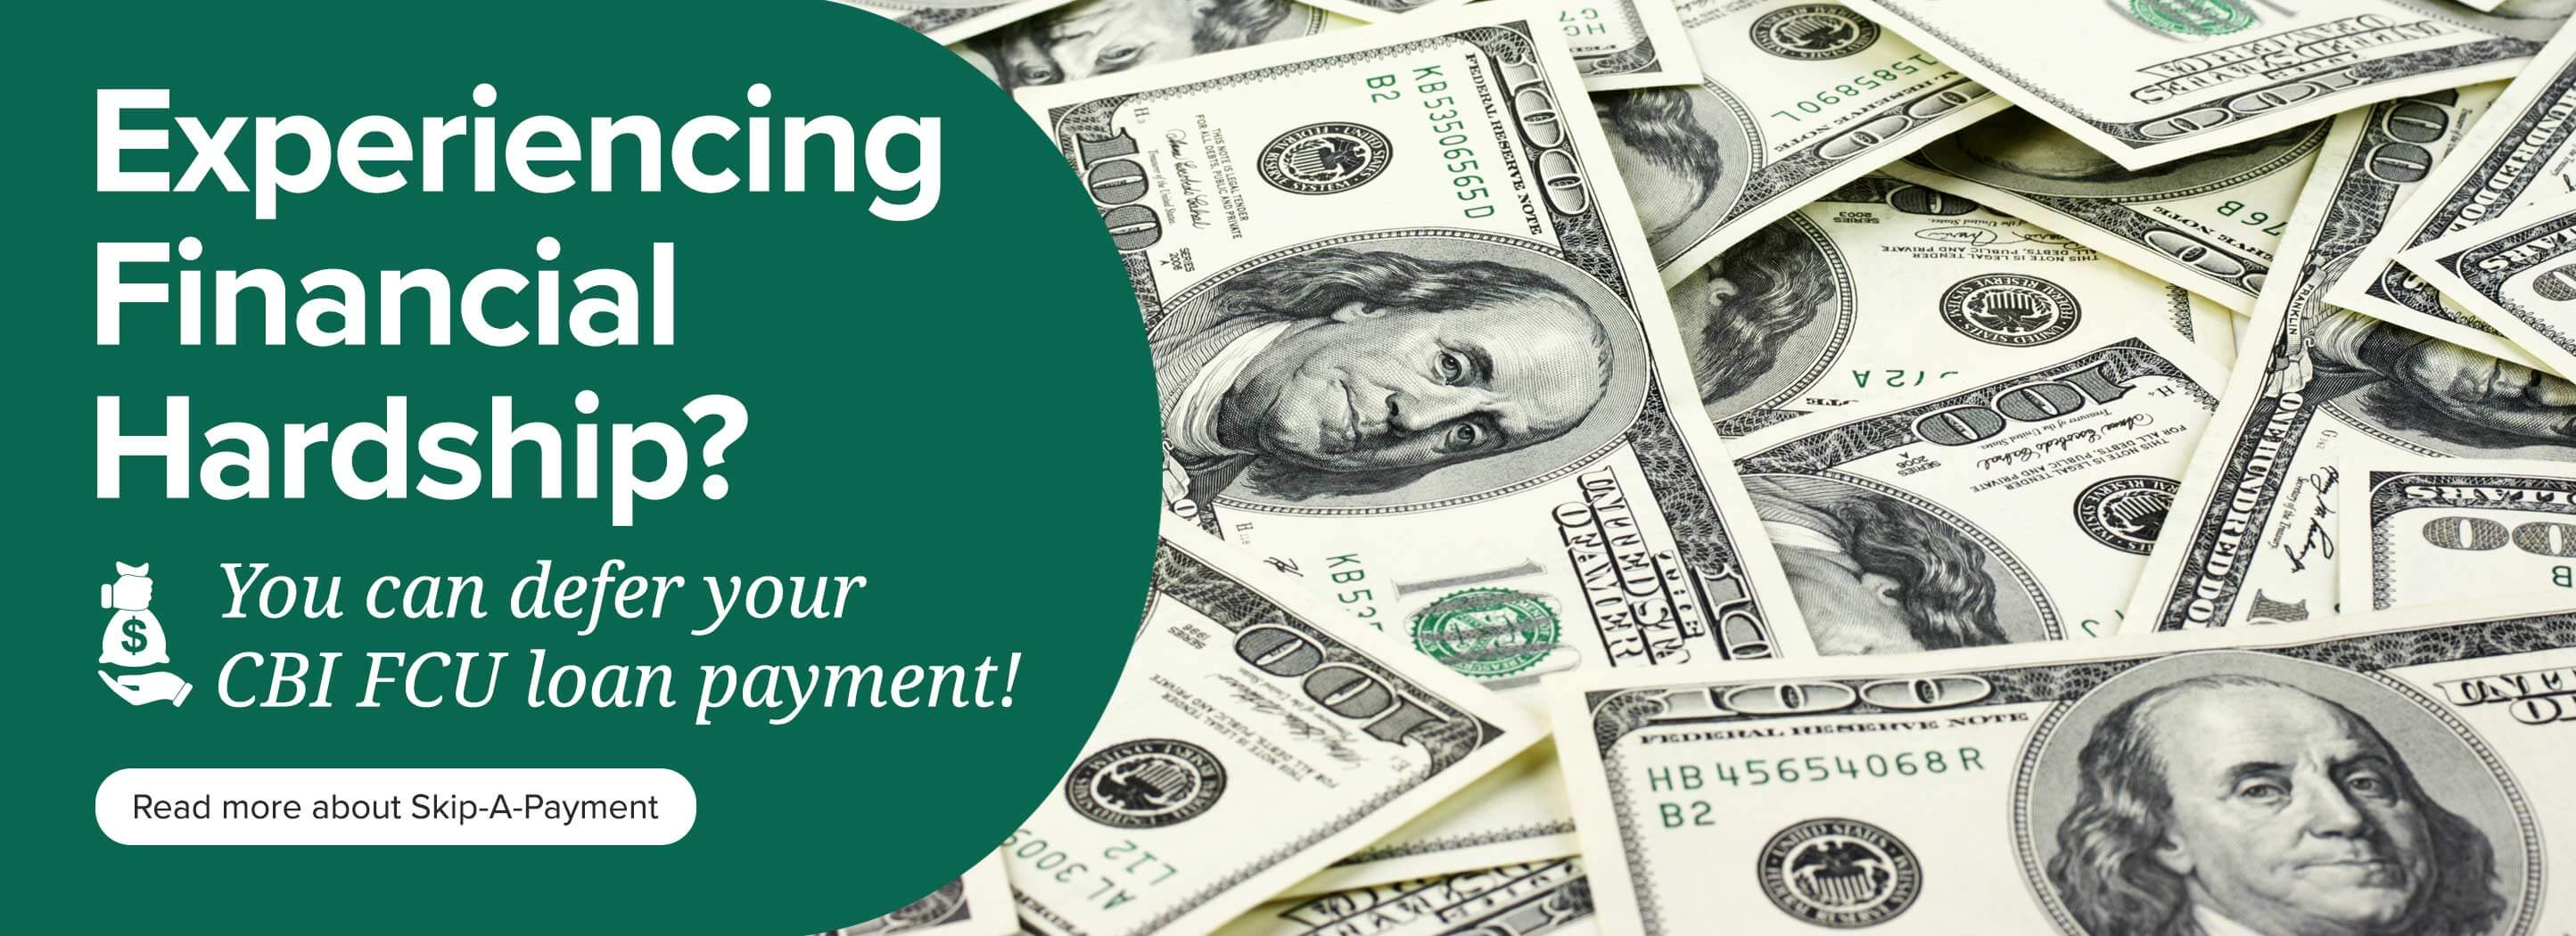 Experiencing financial hardship? You can defer your CBI FCU loan payments. Read more about Skip A Payment